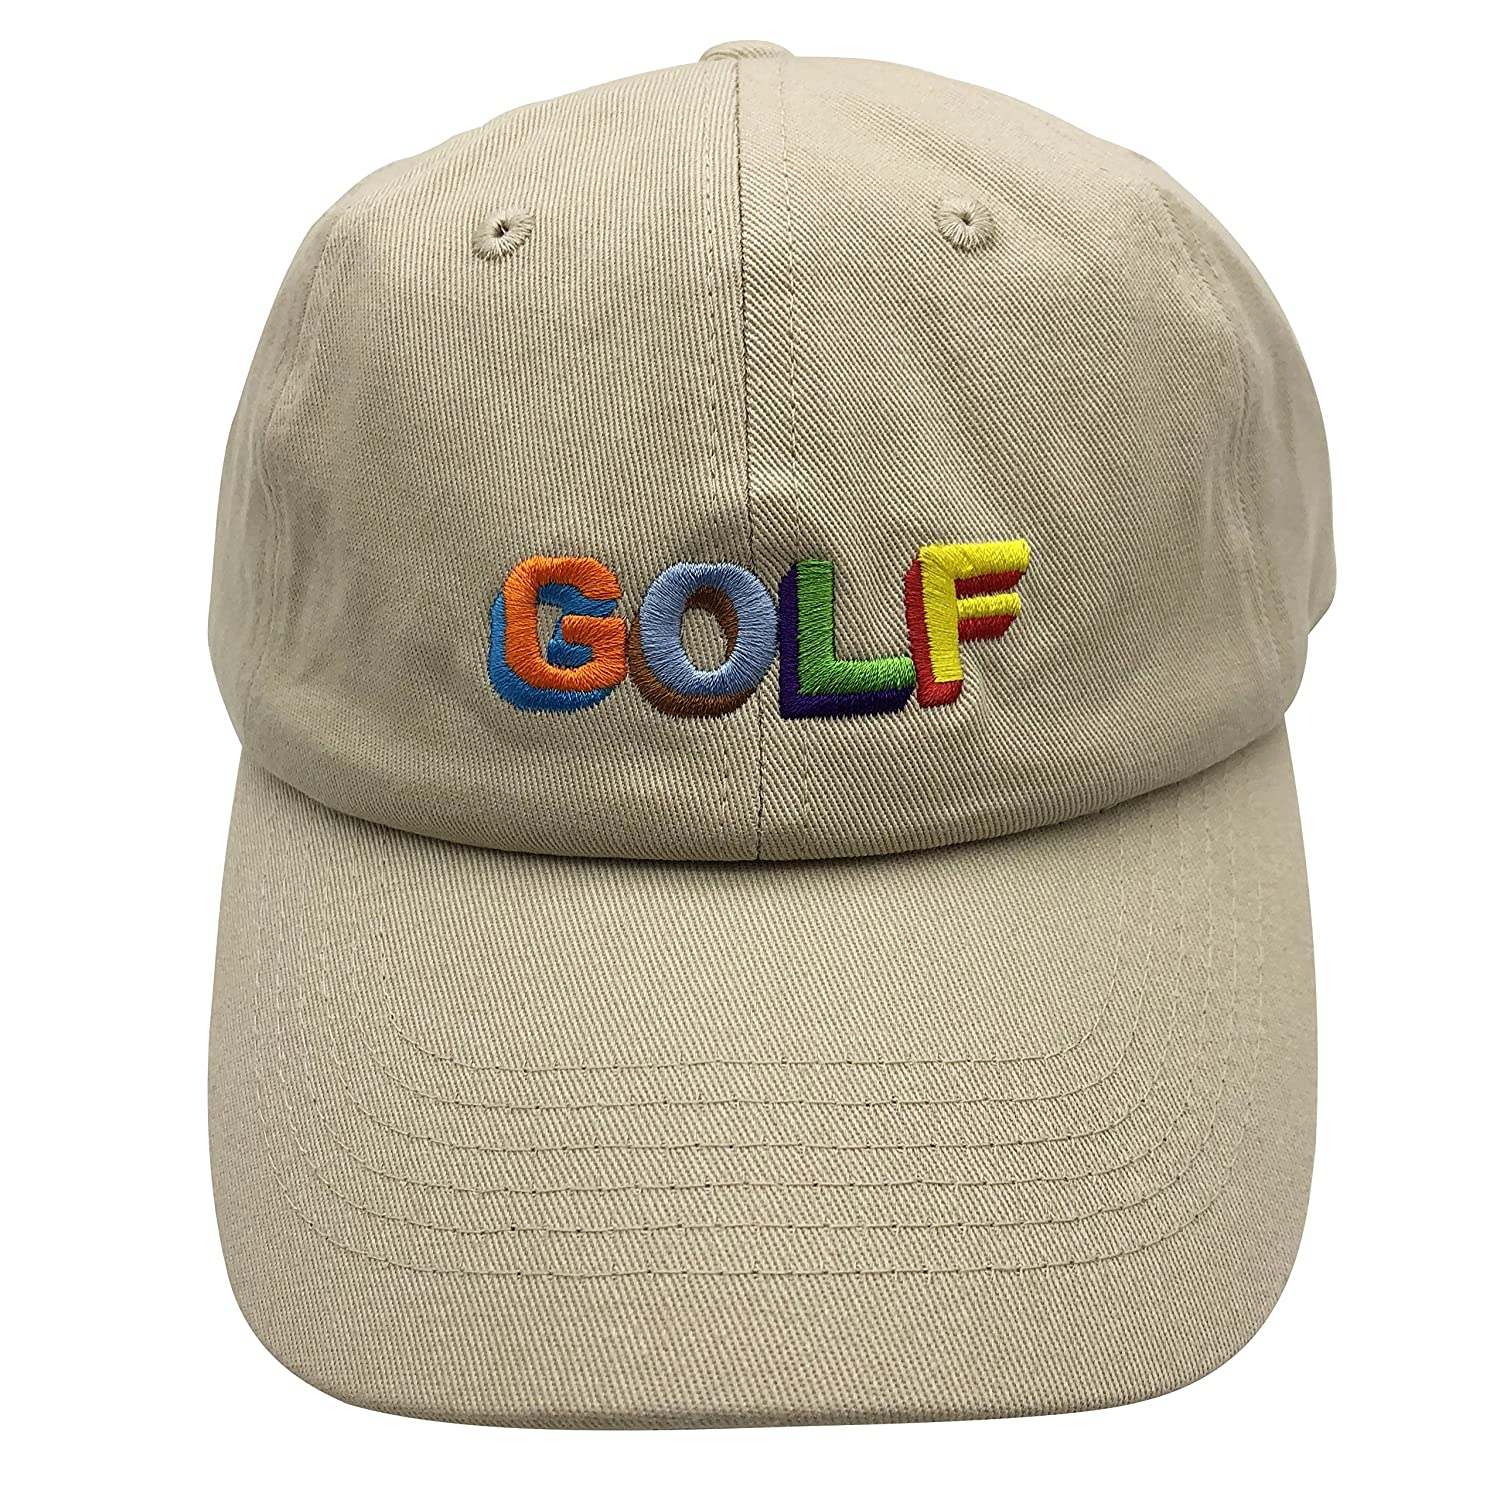 dc6d3a30fafd wuxianyong Golf Dad Hat Baseball Cap 3D Embroidered Adjustable Snapback  Unisex Beige at Amazon Men s Clothing store